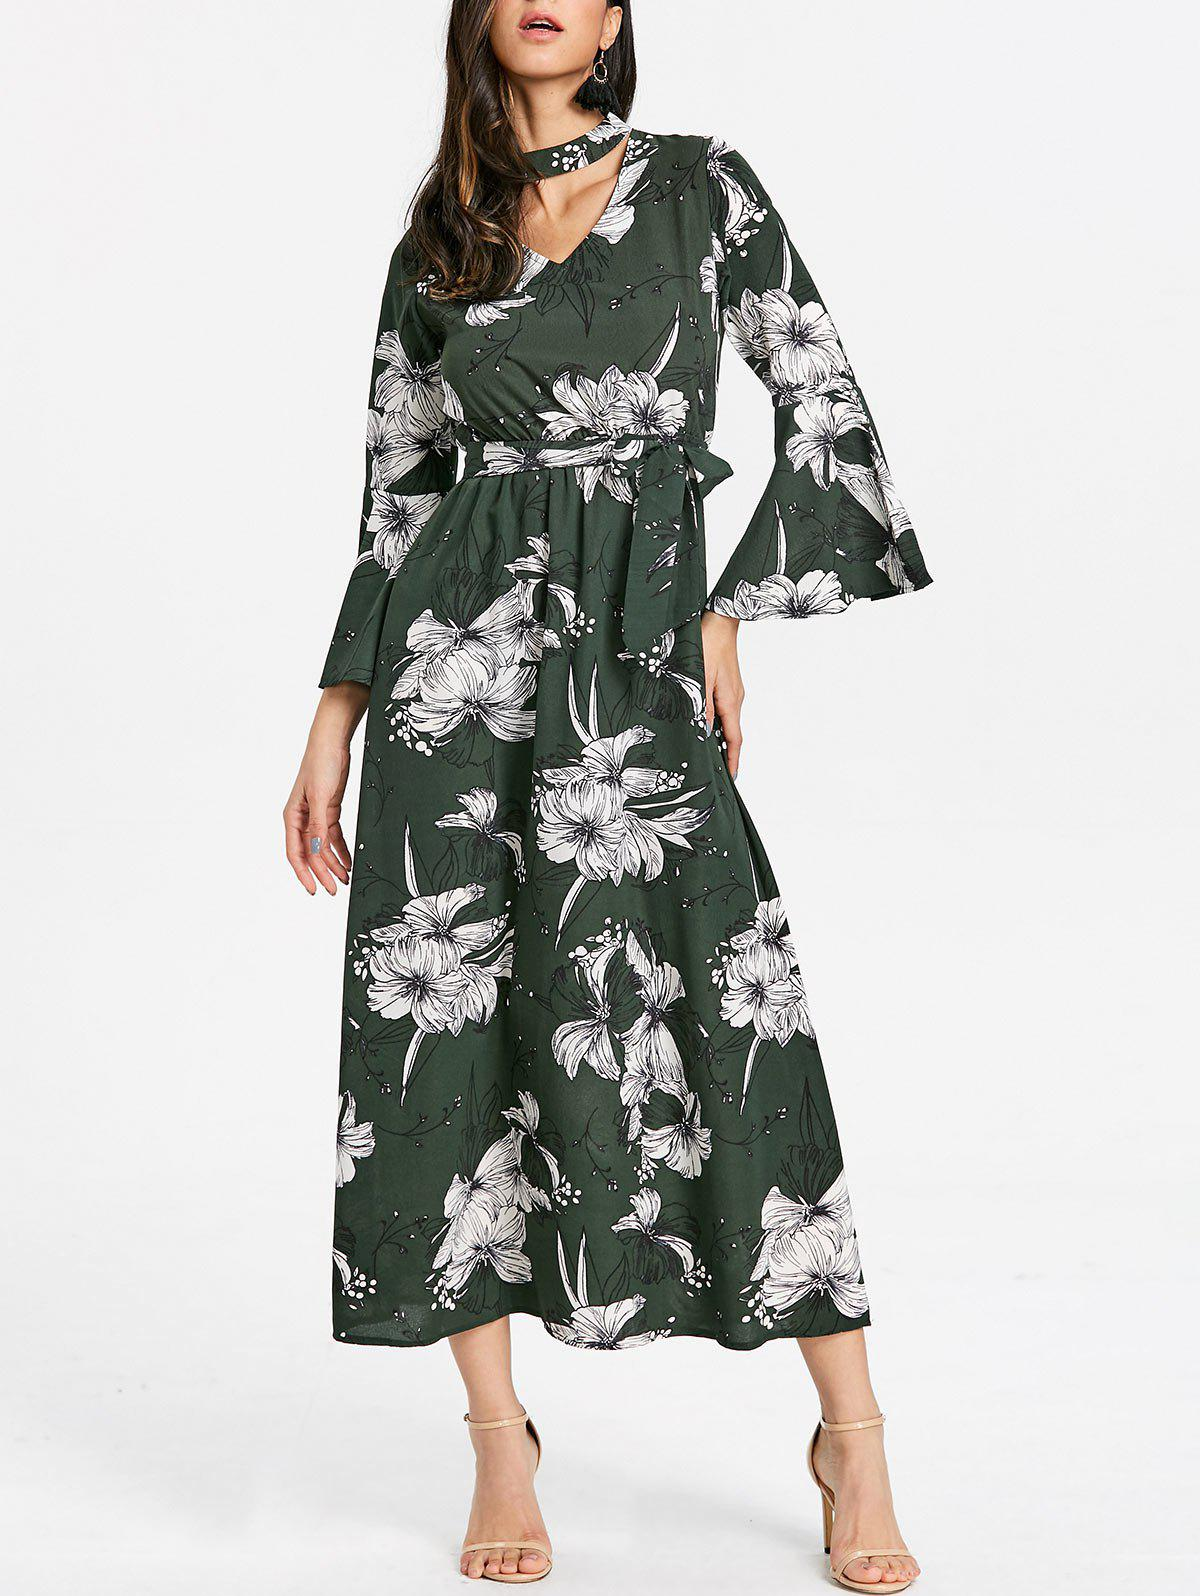 Flare Sleeve Cut Out Floral Print Dress flare sleeve cut out bowknot mini dress